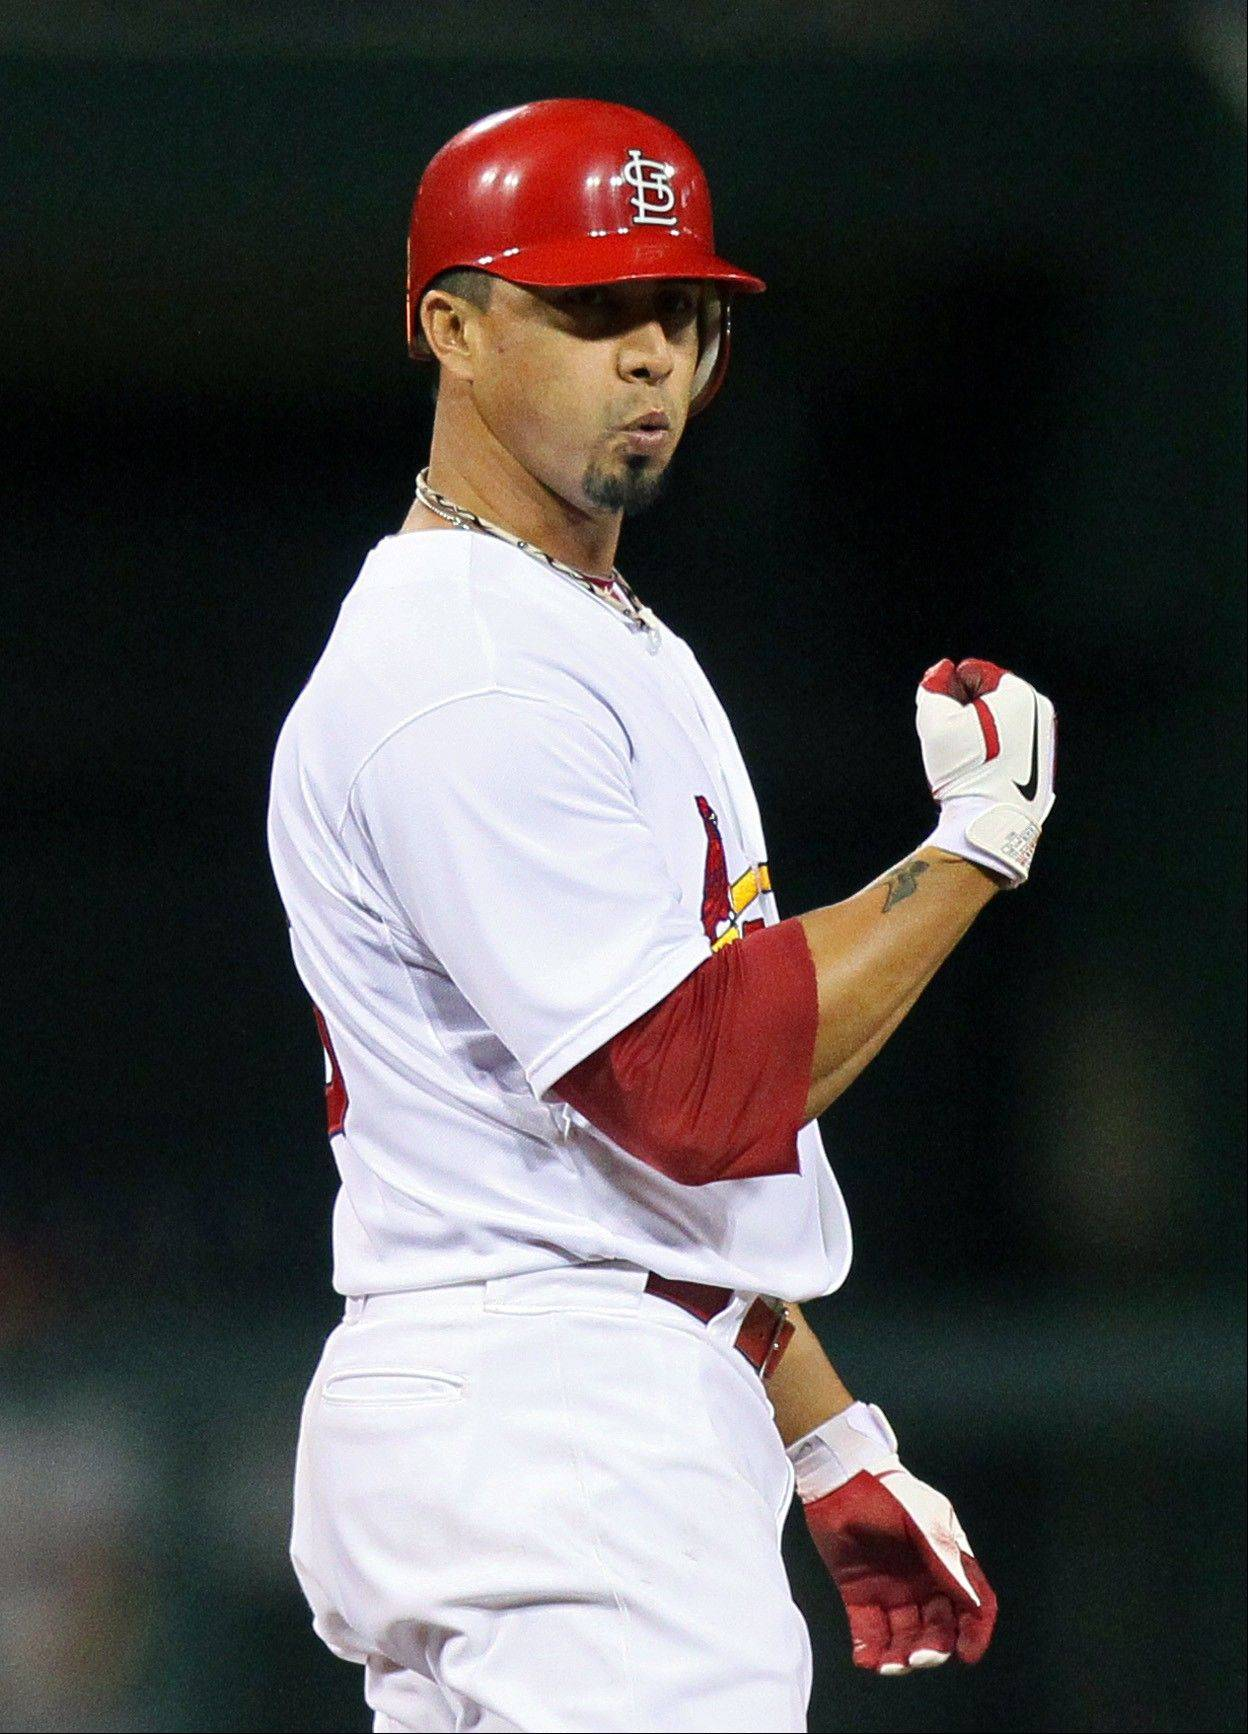 In addition to pitching seven scoreless innings, the Cardinals' Kyle Lohse hit an RBI double Tuesday in a victory over Houston in St. Louis.